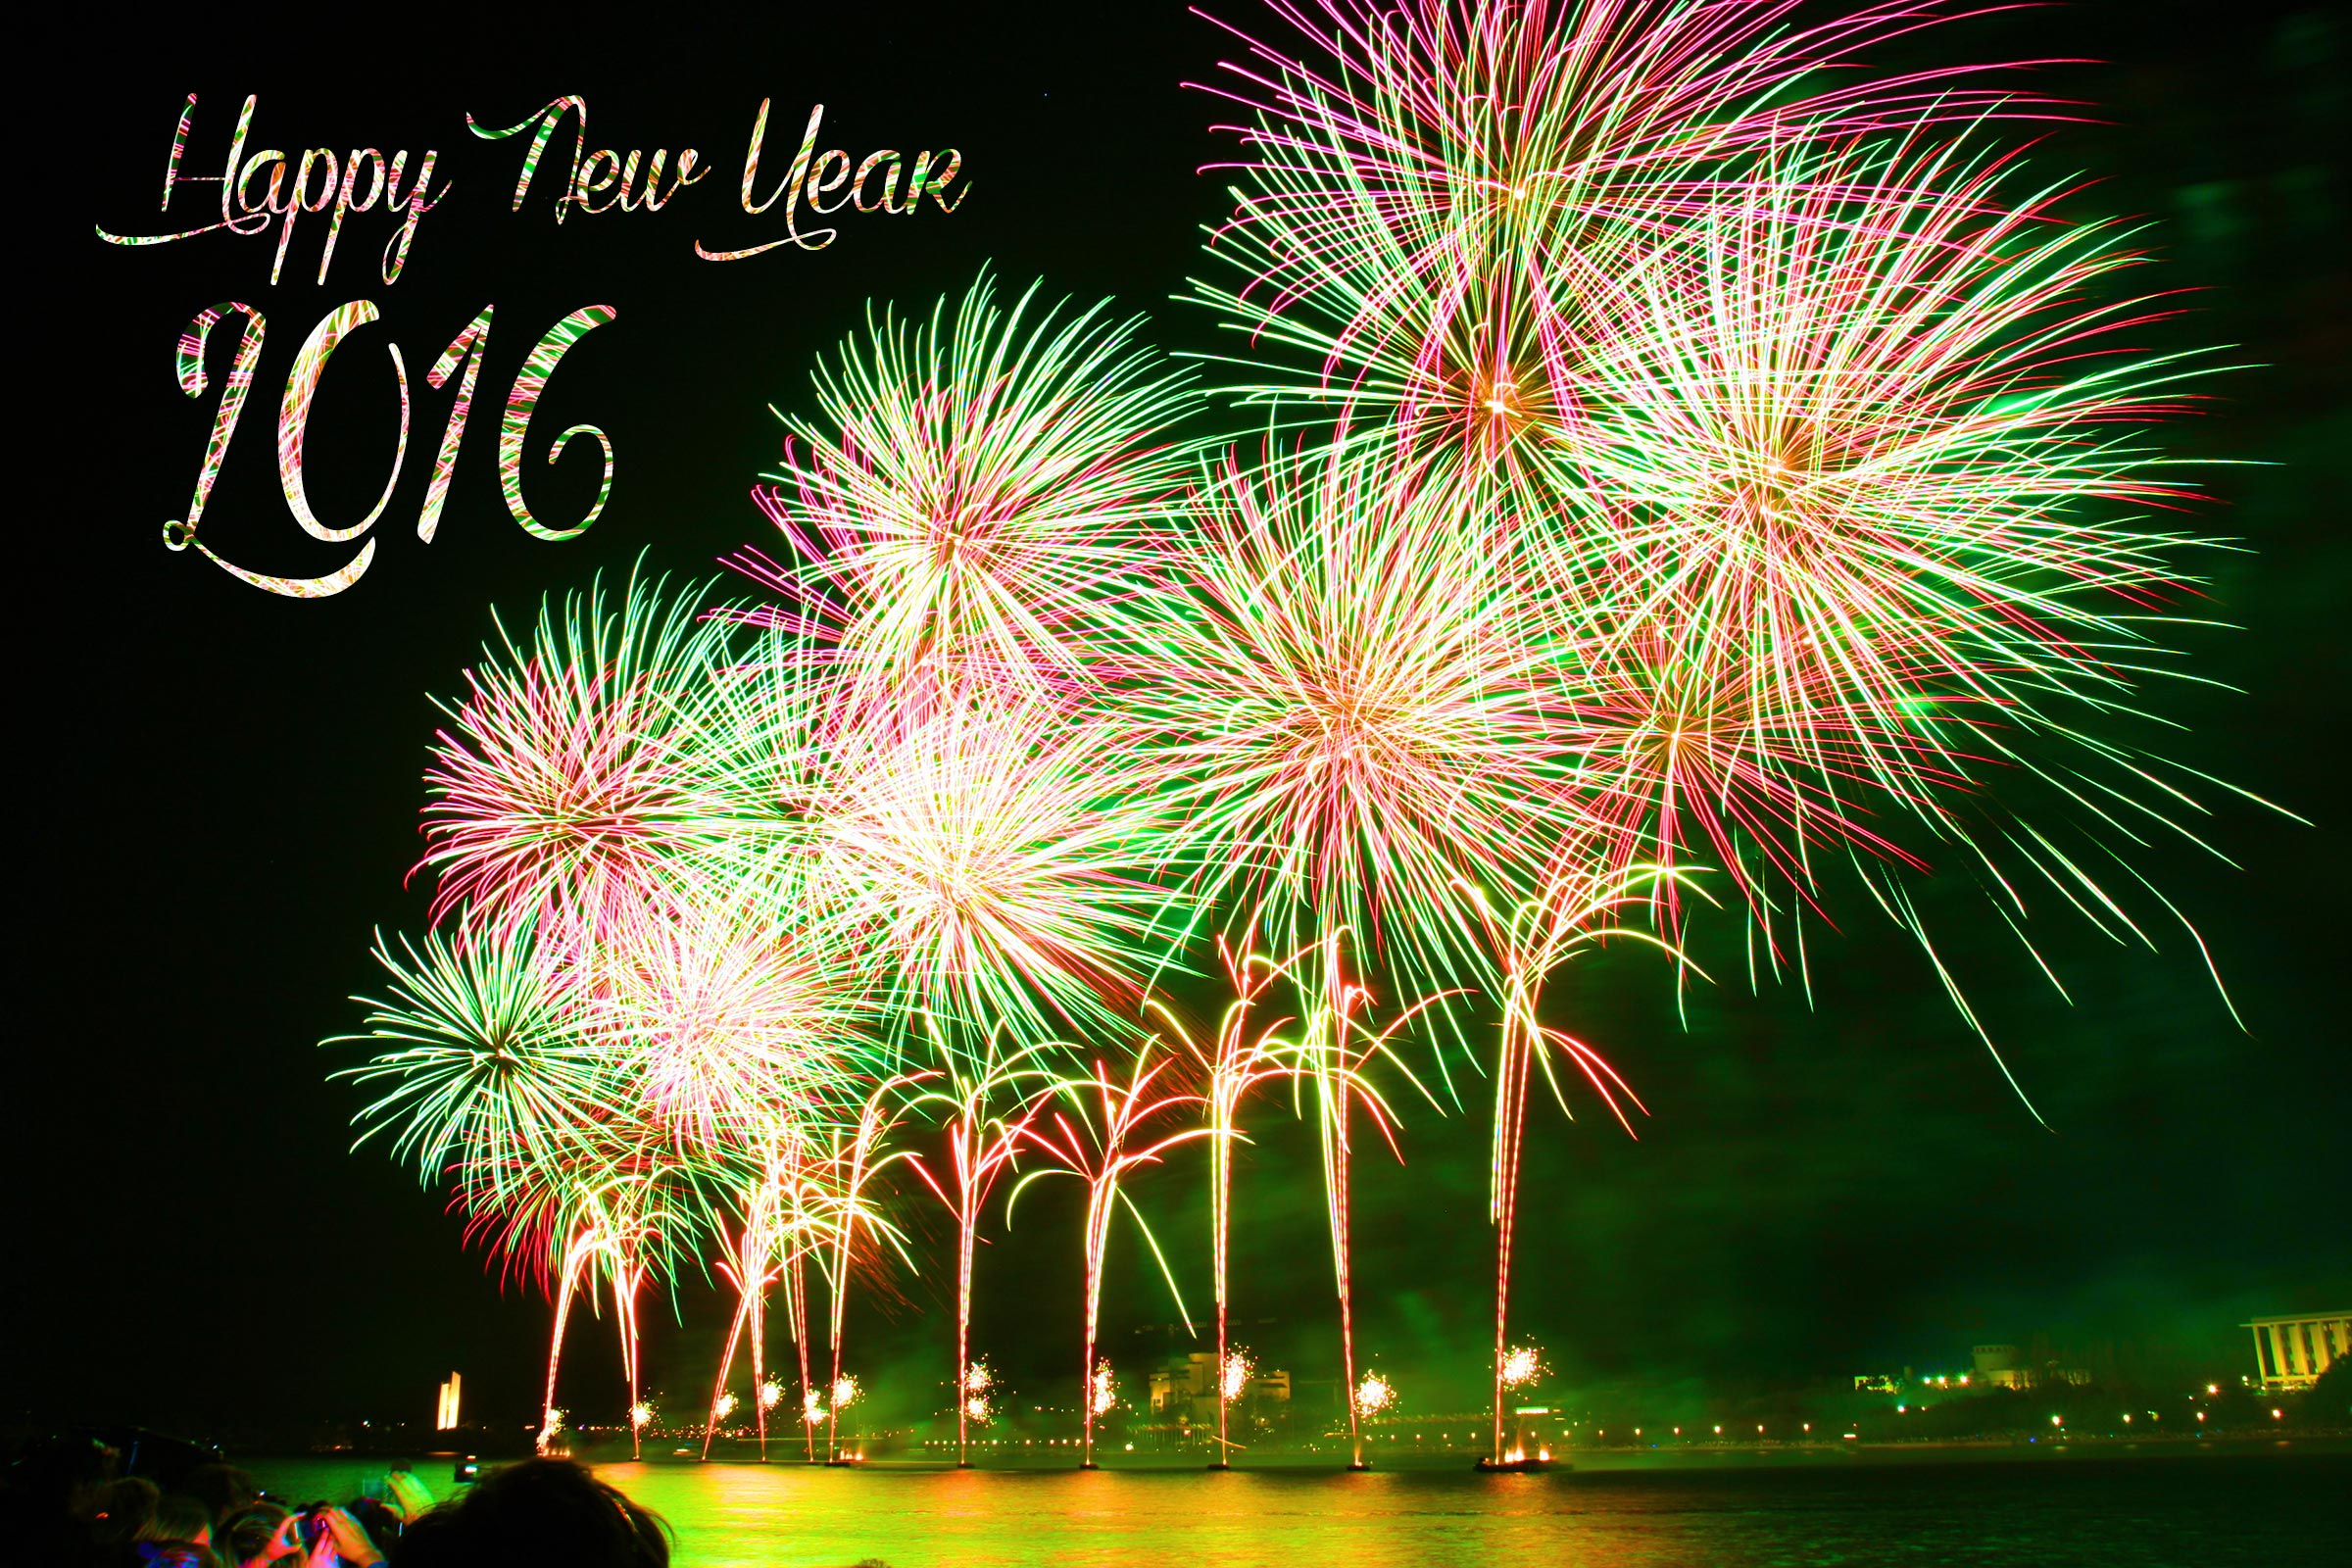 Free Download Happy New Year 2016 Wallpapers Hd Images Facebook